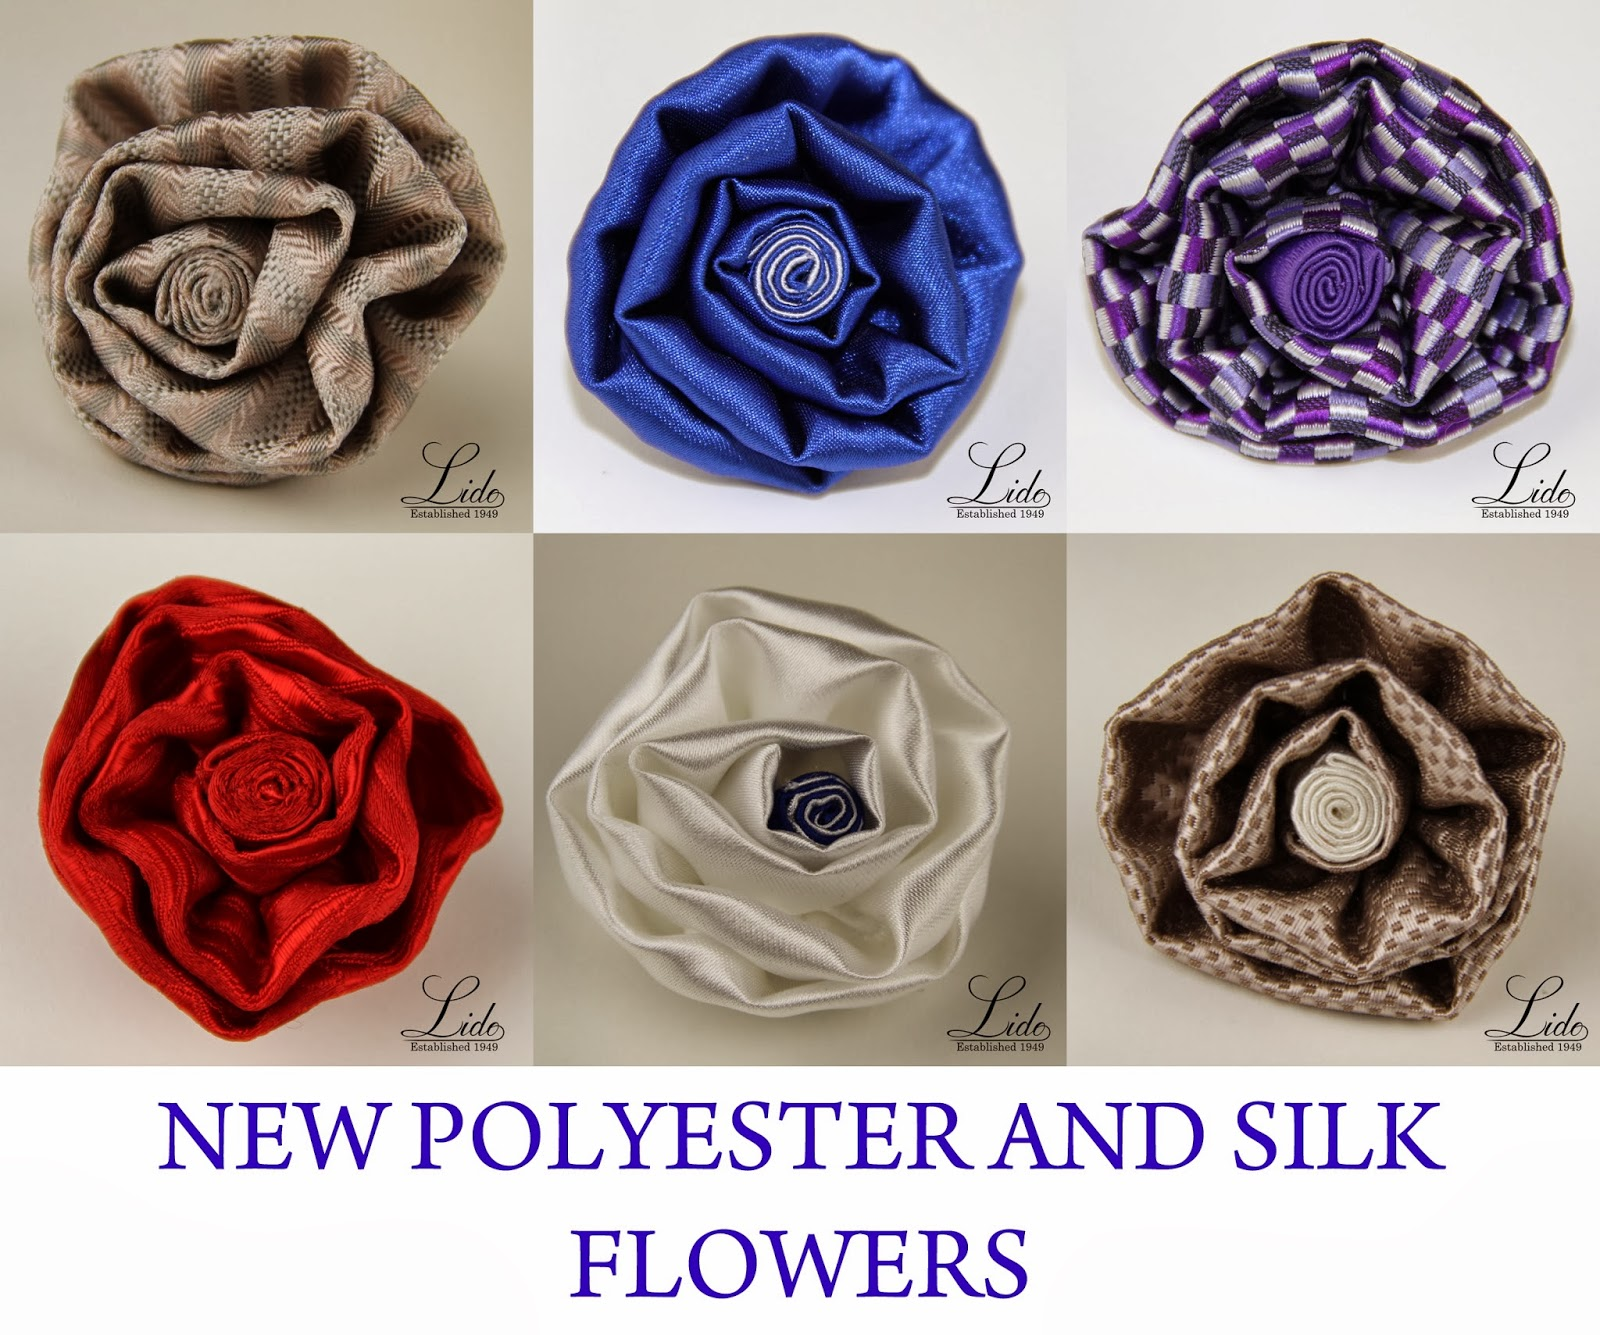 Lido Ties Makers Of Ties And Accessories Polyester And Silk